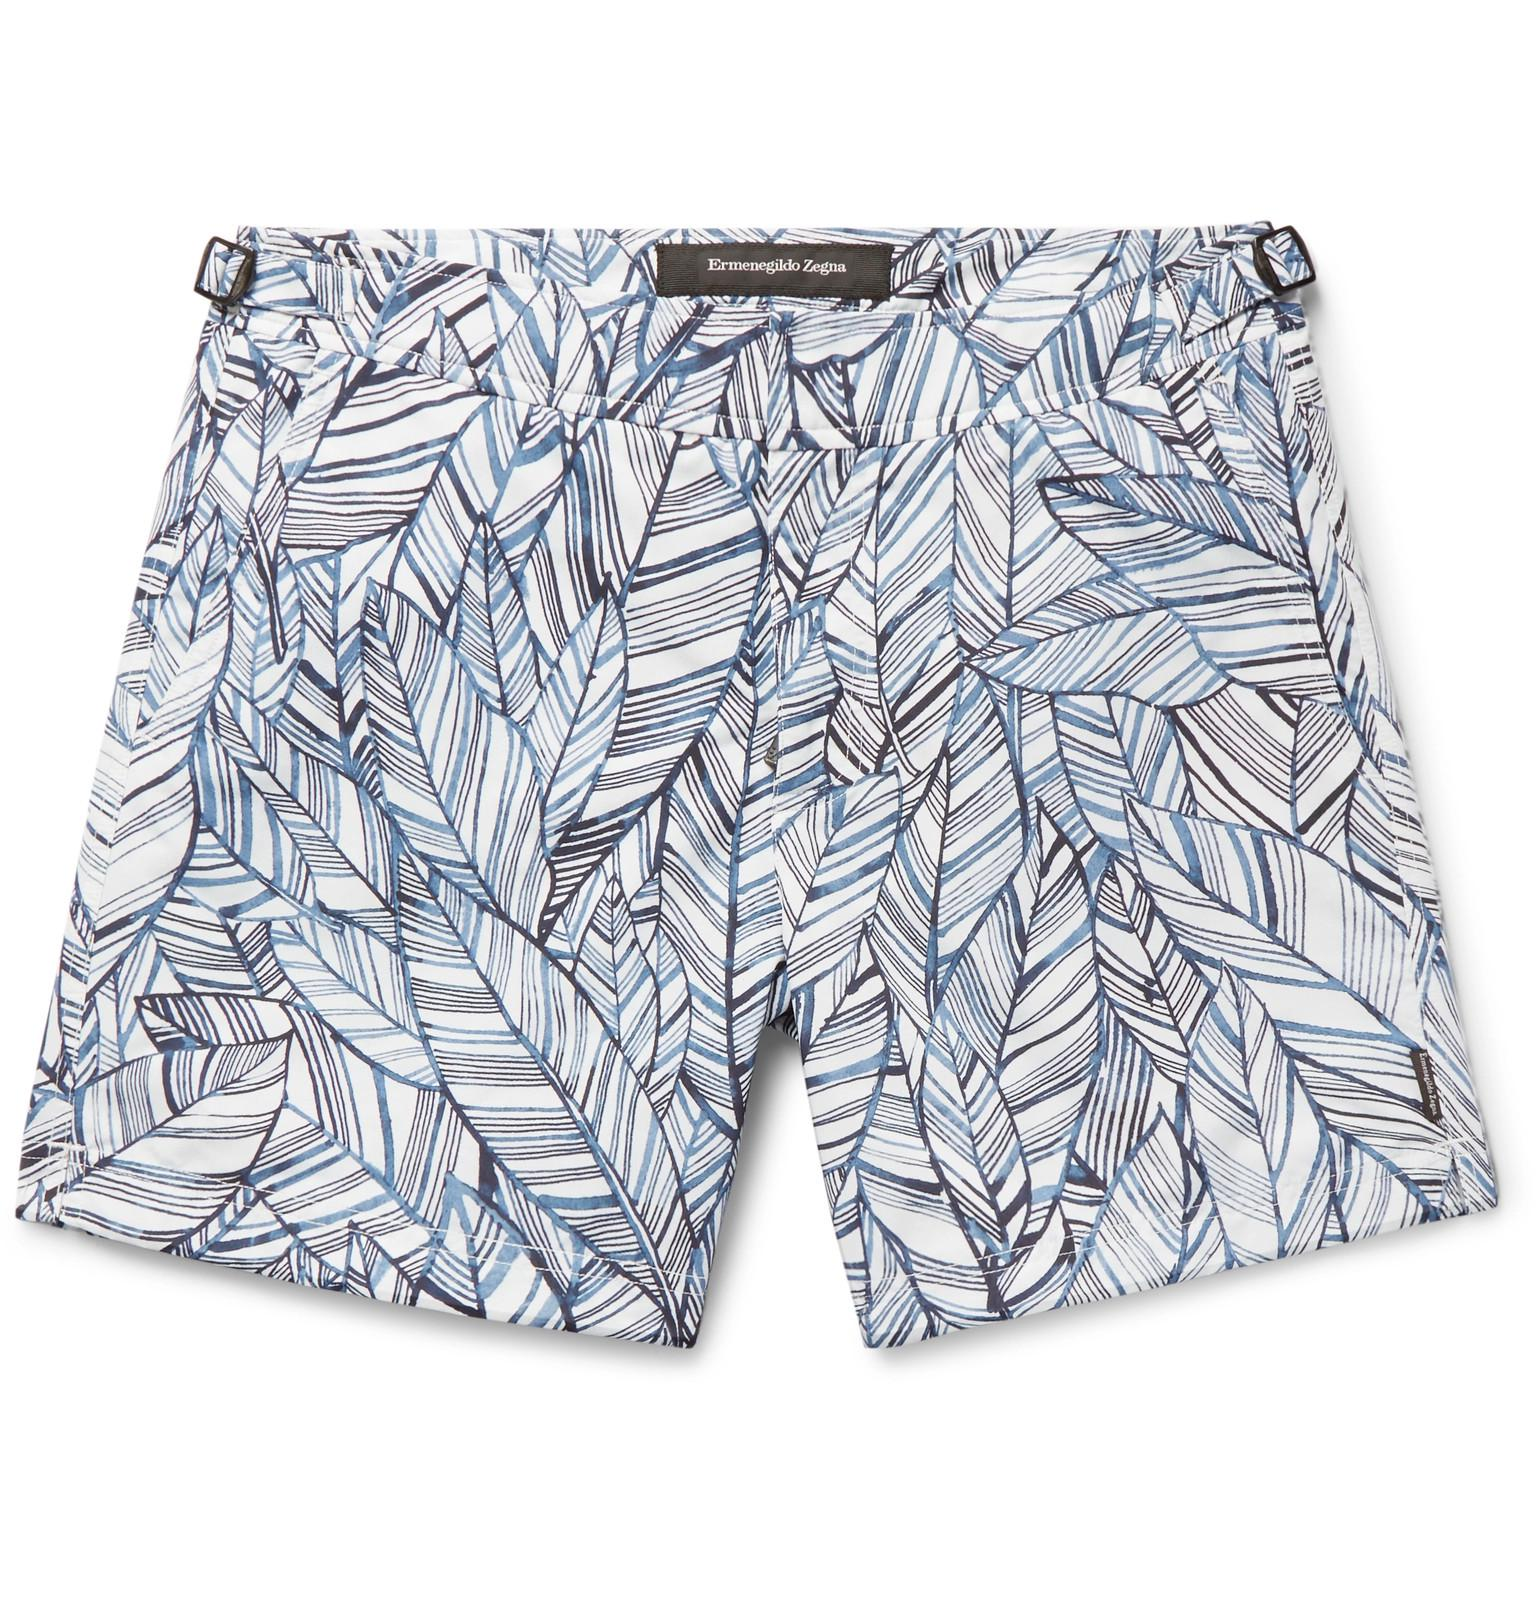 Slim-fit Mid-length Printed Swim Shorts Ermenegildo Zegna Sale Cheap Sale Visa Payment Discount Official Discount In China With Mastercard Cheap Online Cz0grzeK